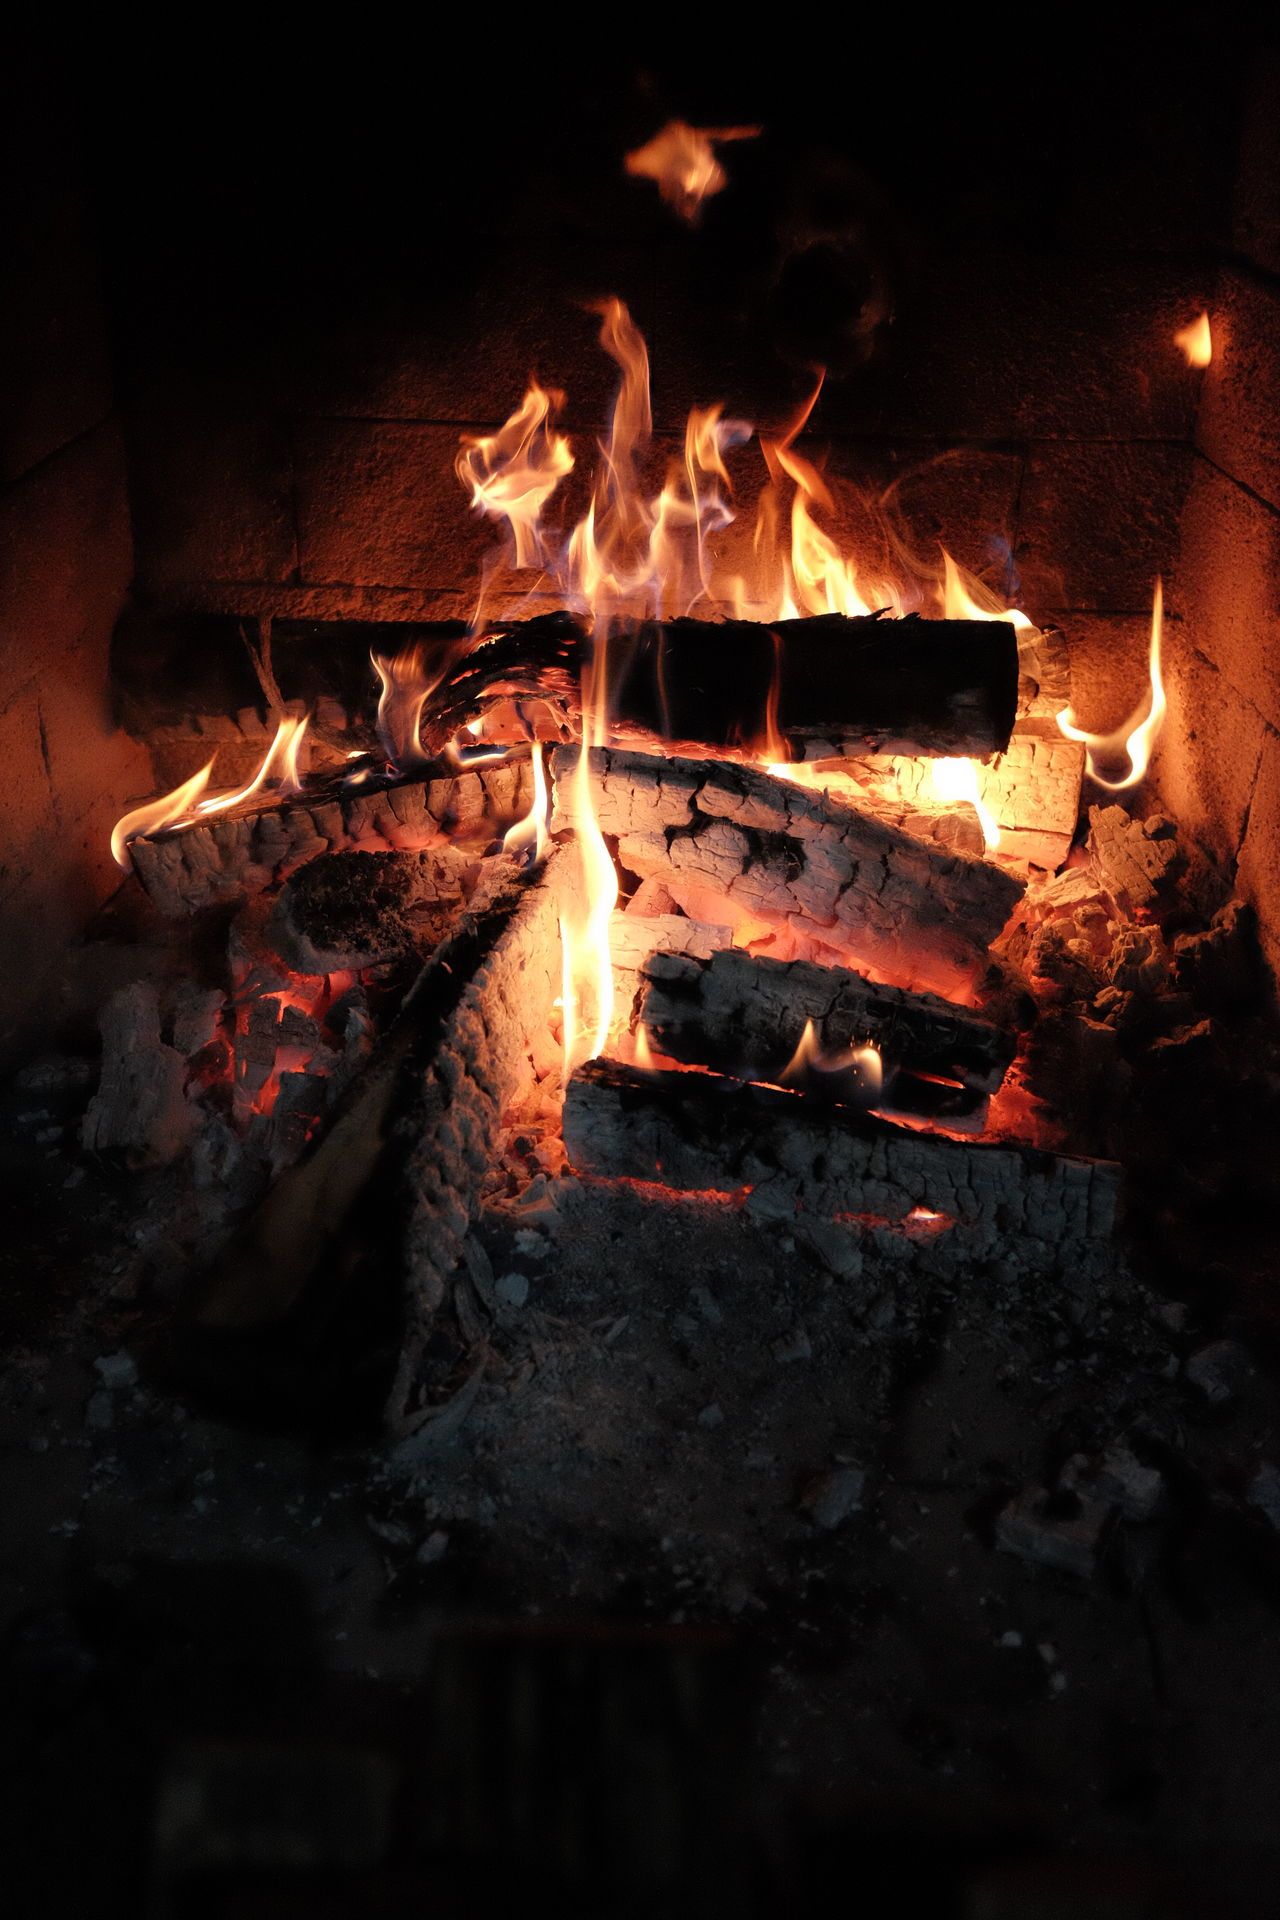 Warming Up With A Bonfire Bonfire Burning Close-up Fire - Natural Phenomenon Fire Wood Burning Flame Glowing Heat - Temperature Indoors  Night No People